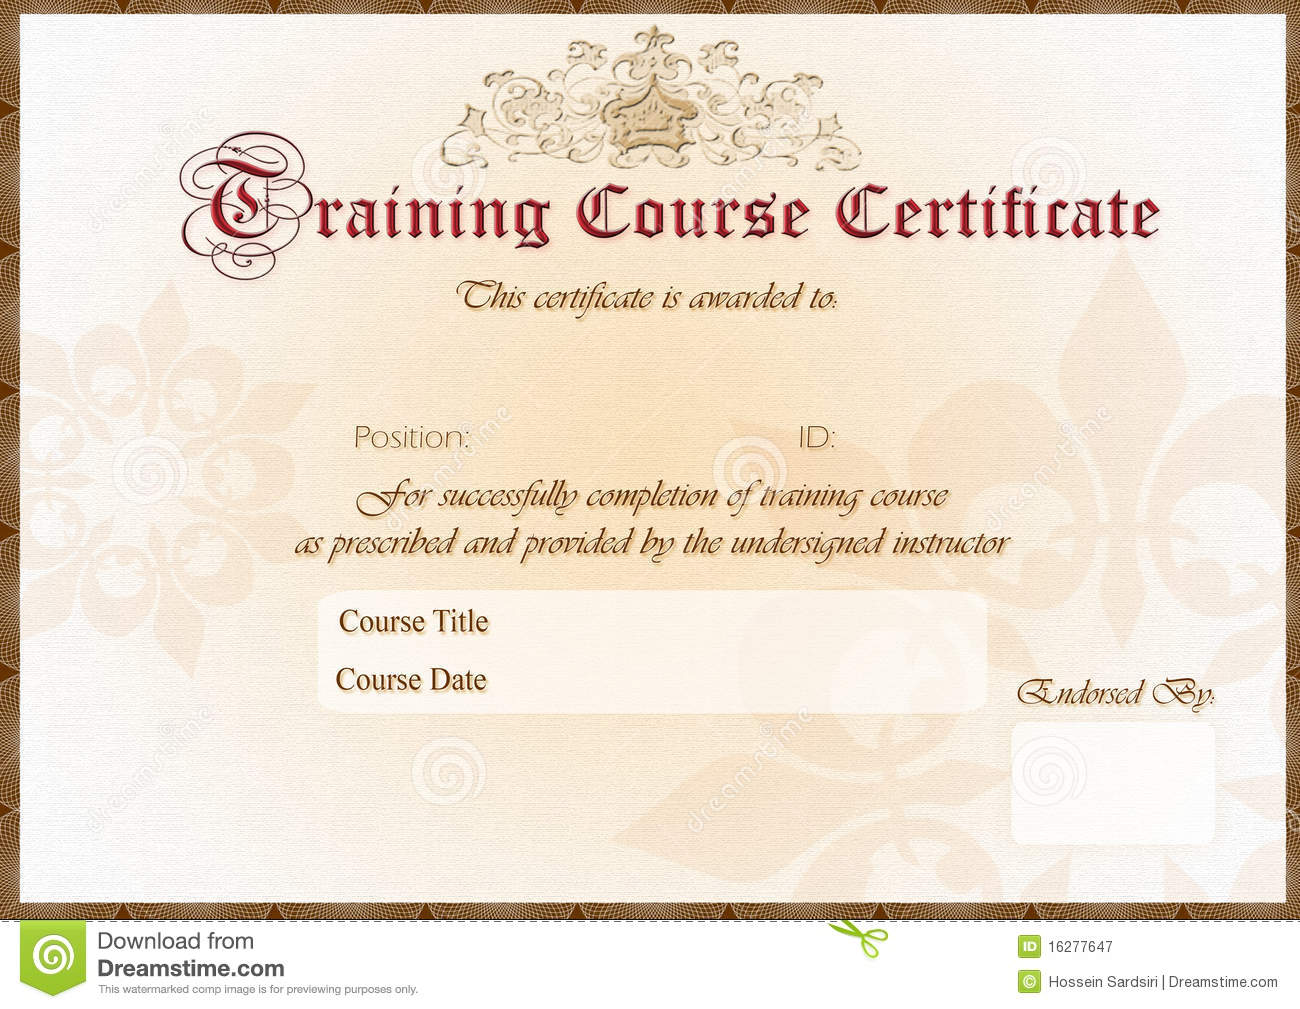 Radiology certification 1betcityfo Image collections